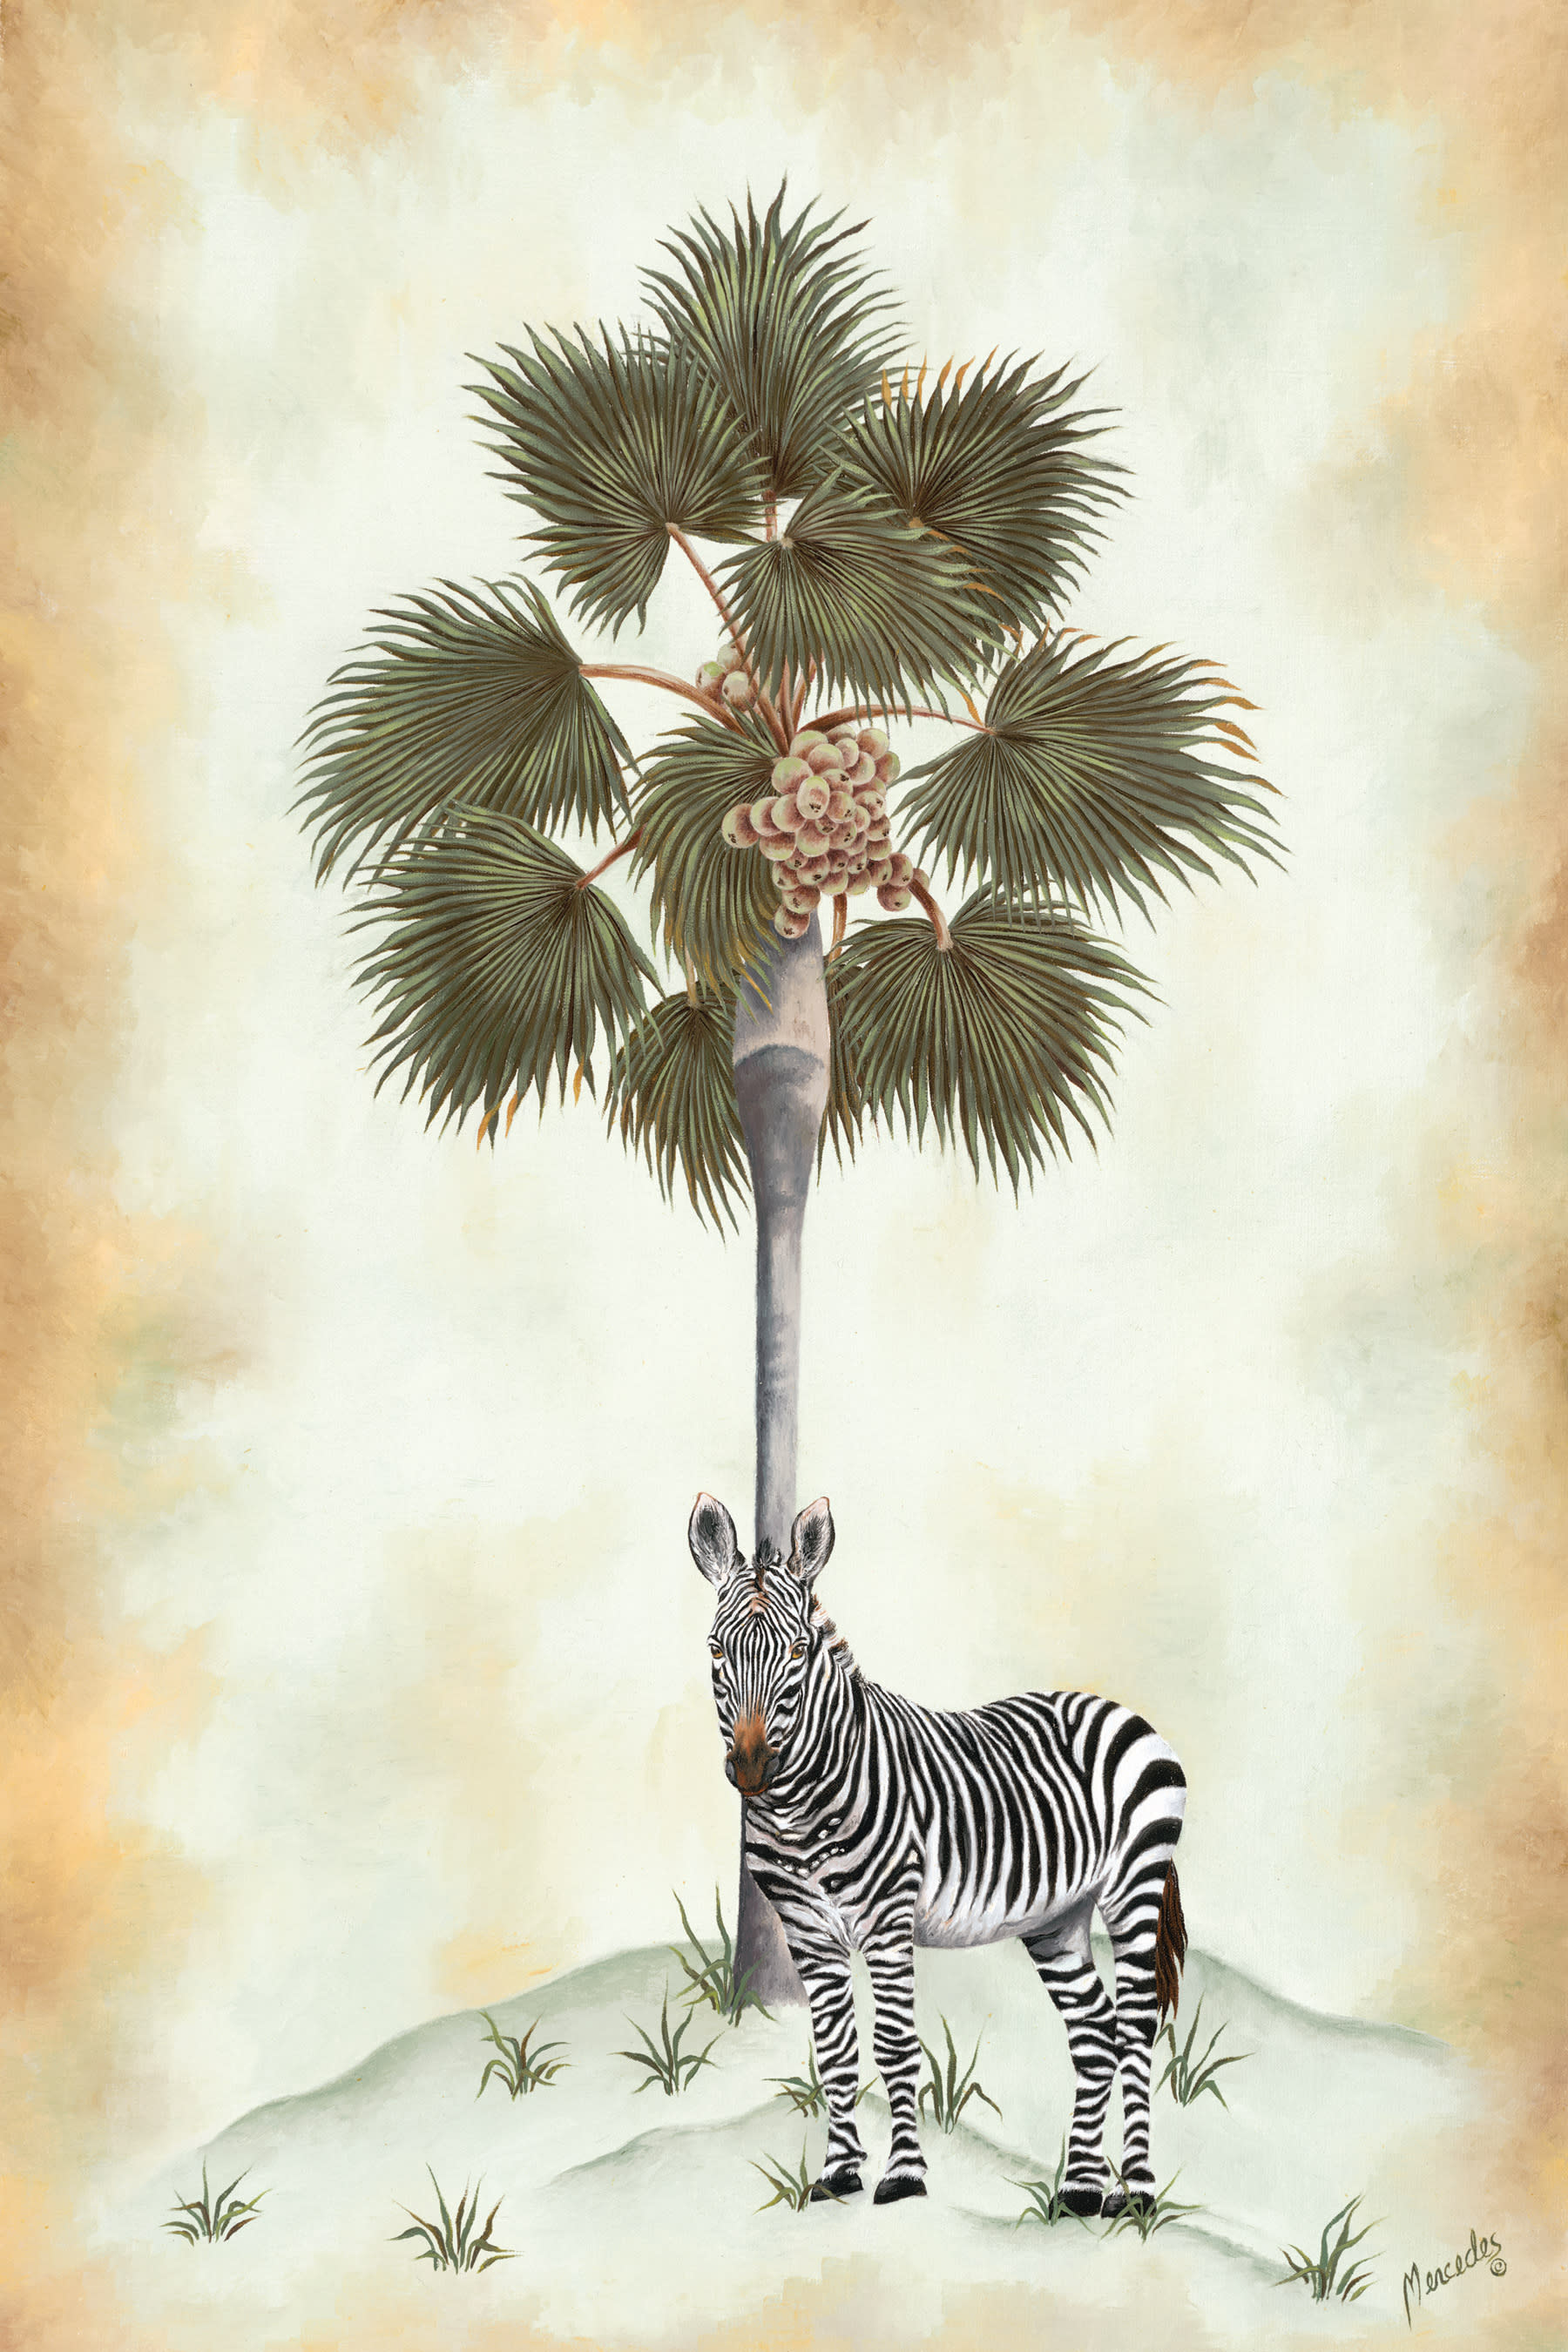 Zebra palm   image only changed to rgb ehh789